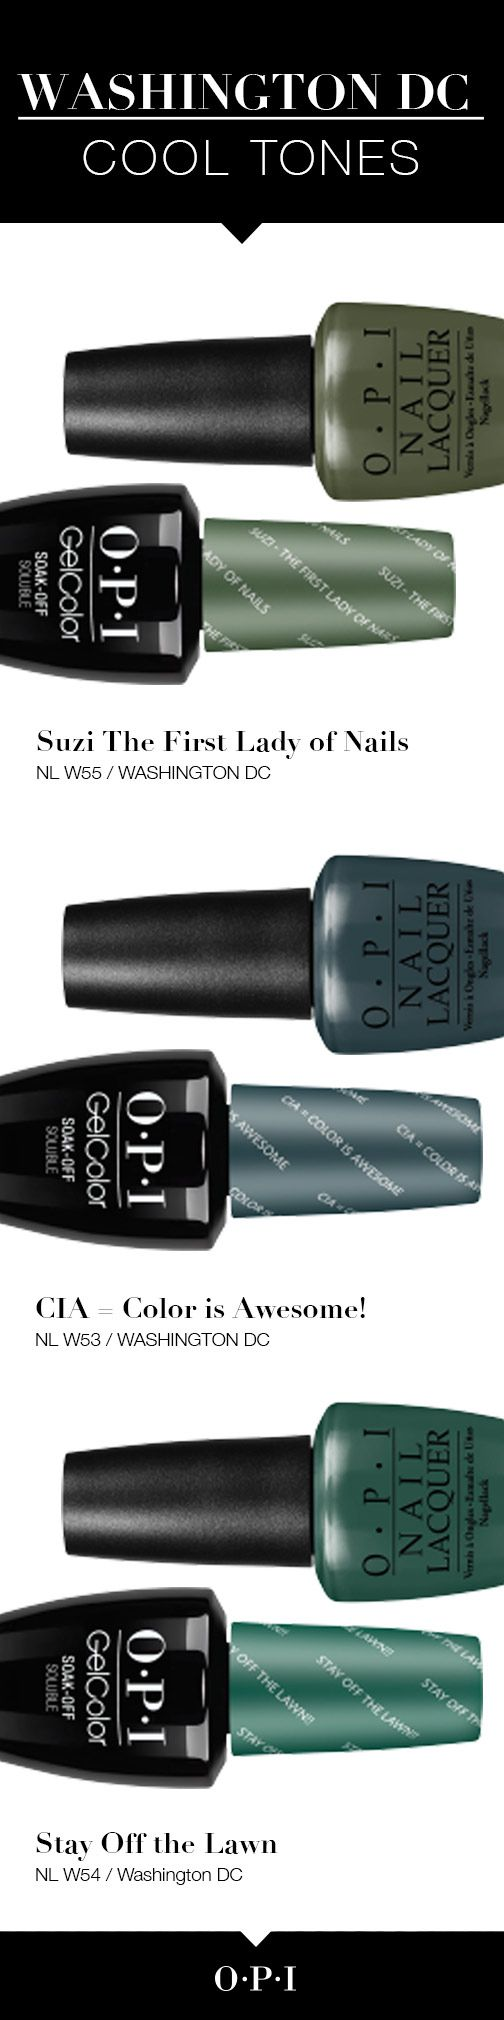 Meet the Cool Tones from the New OPI Washington DC Collection! Introducing OPI's fall collection inspired by our nation's capital, Washington DC. OPI is delighted to partner with Kerry Washington on these must-have shades for fall. Give your nails the presidential treatment with #OPIWashingtonDC bold colors and looks. Get your hands on them today!